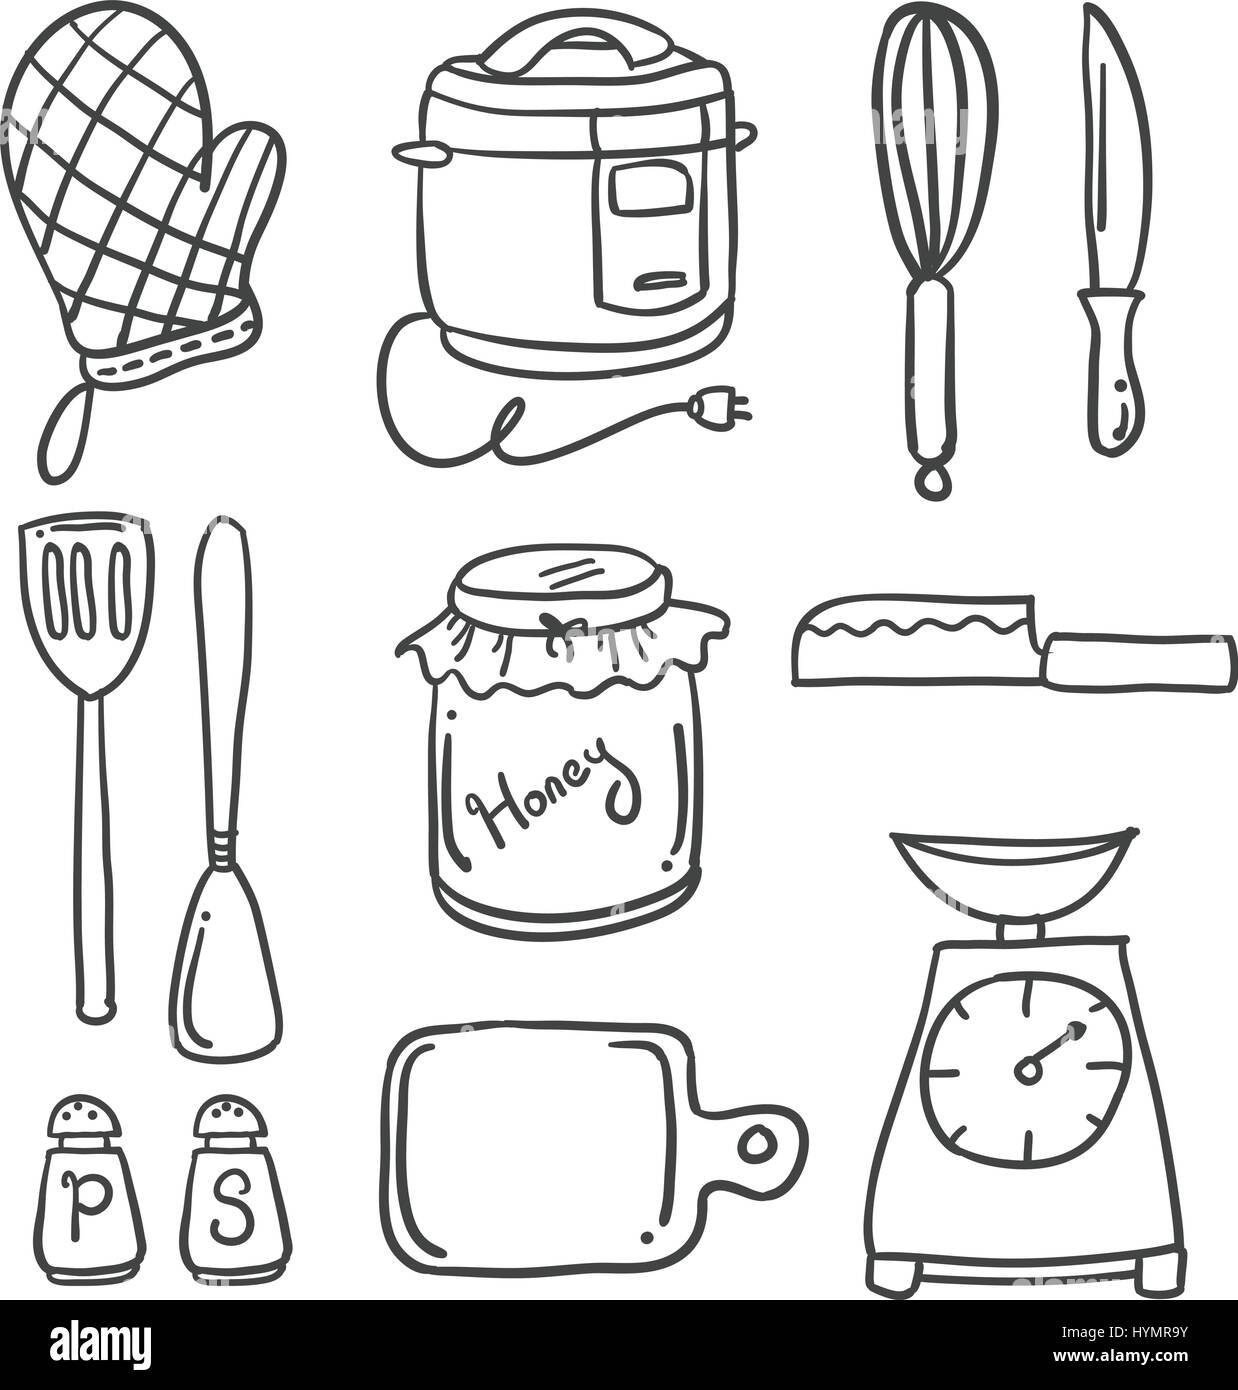 Kitchen Set Hand Draw Style High Resolution Stock Photography And Images Alamy